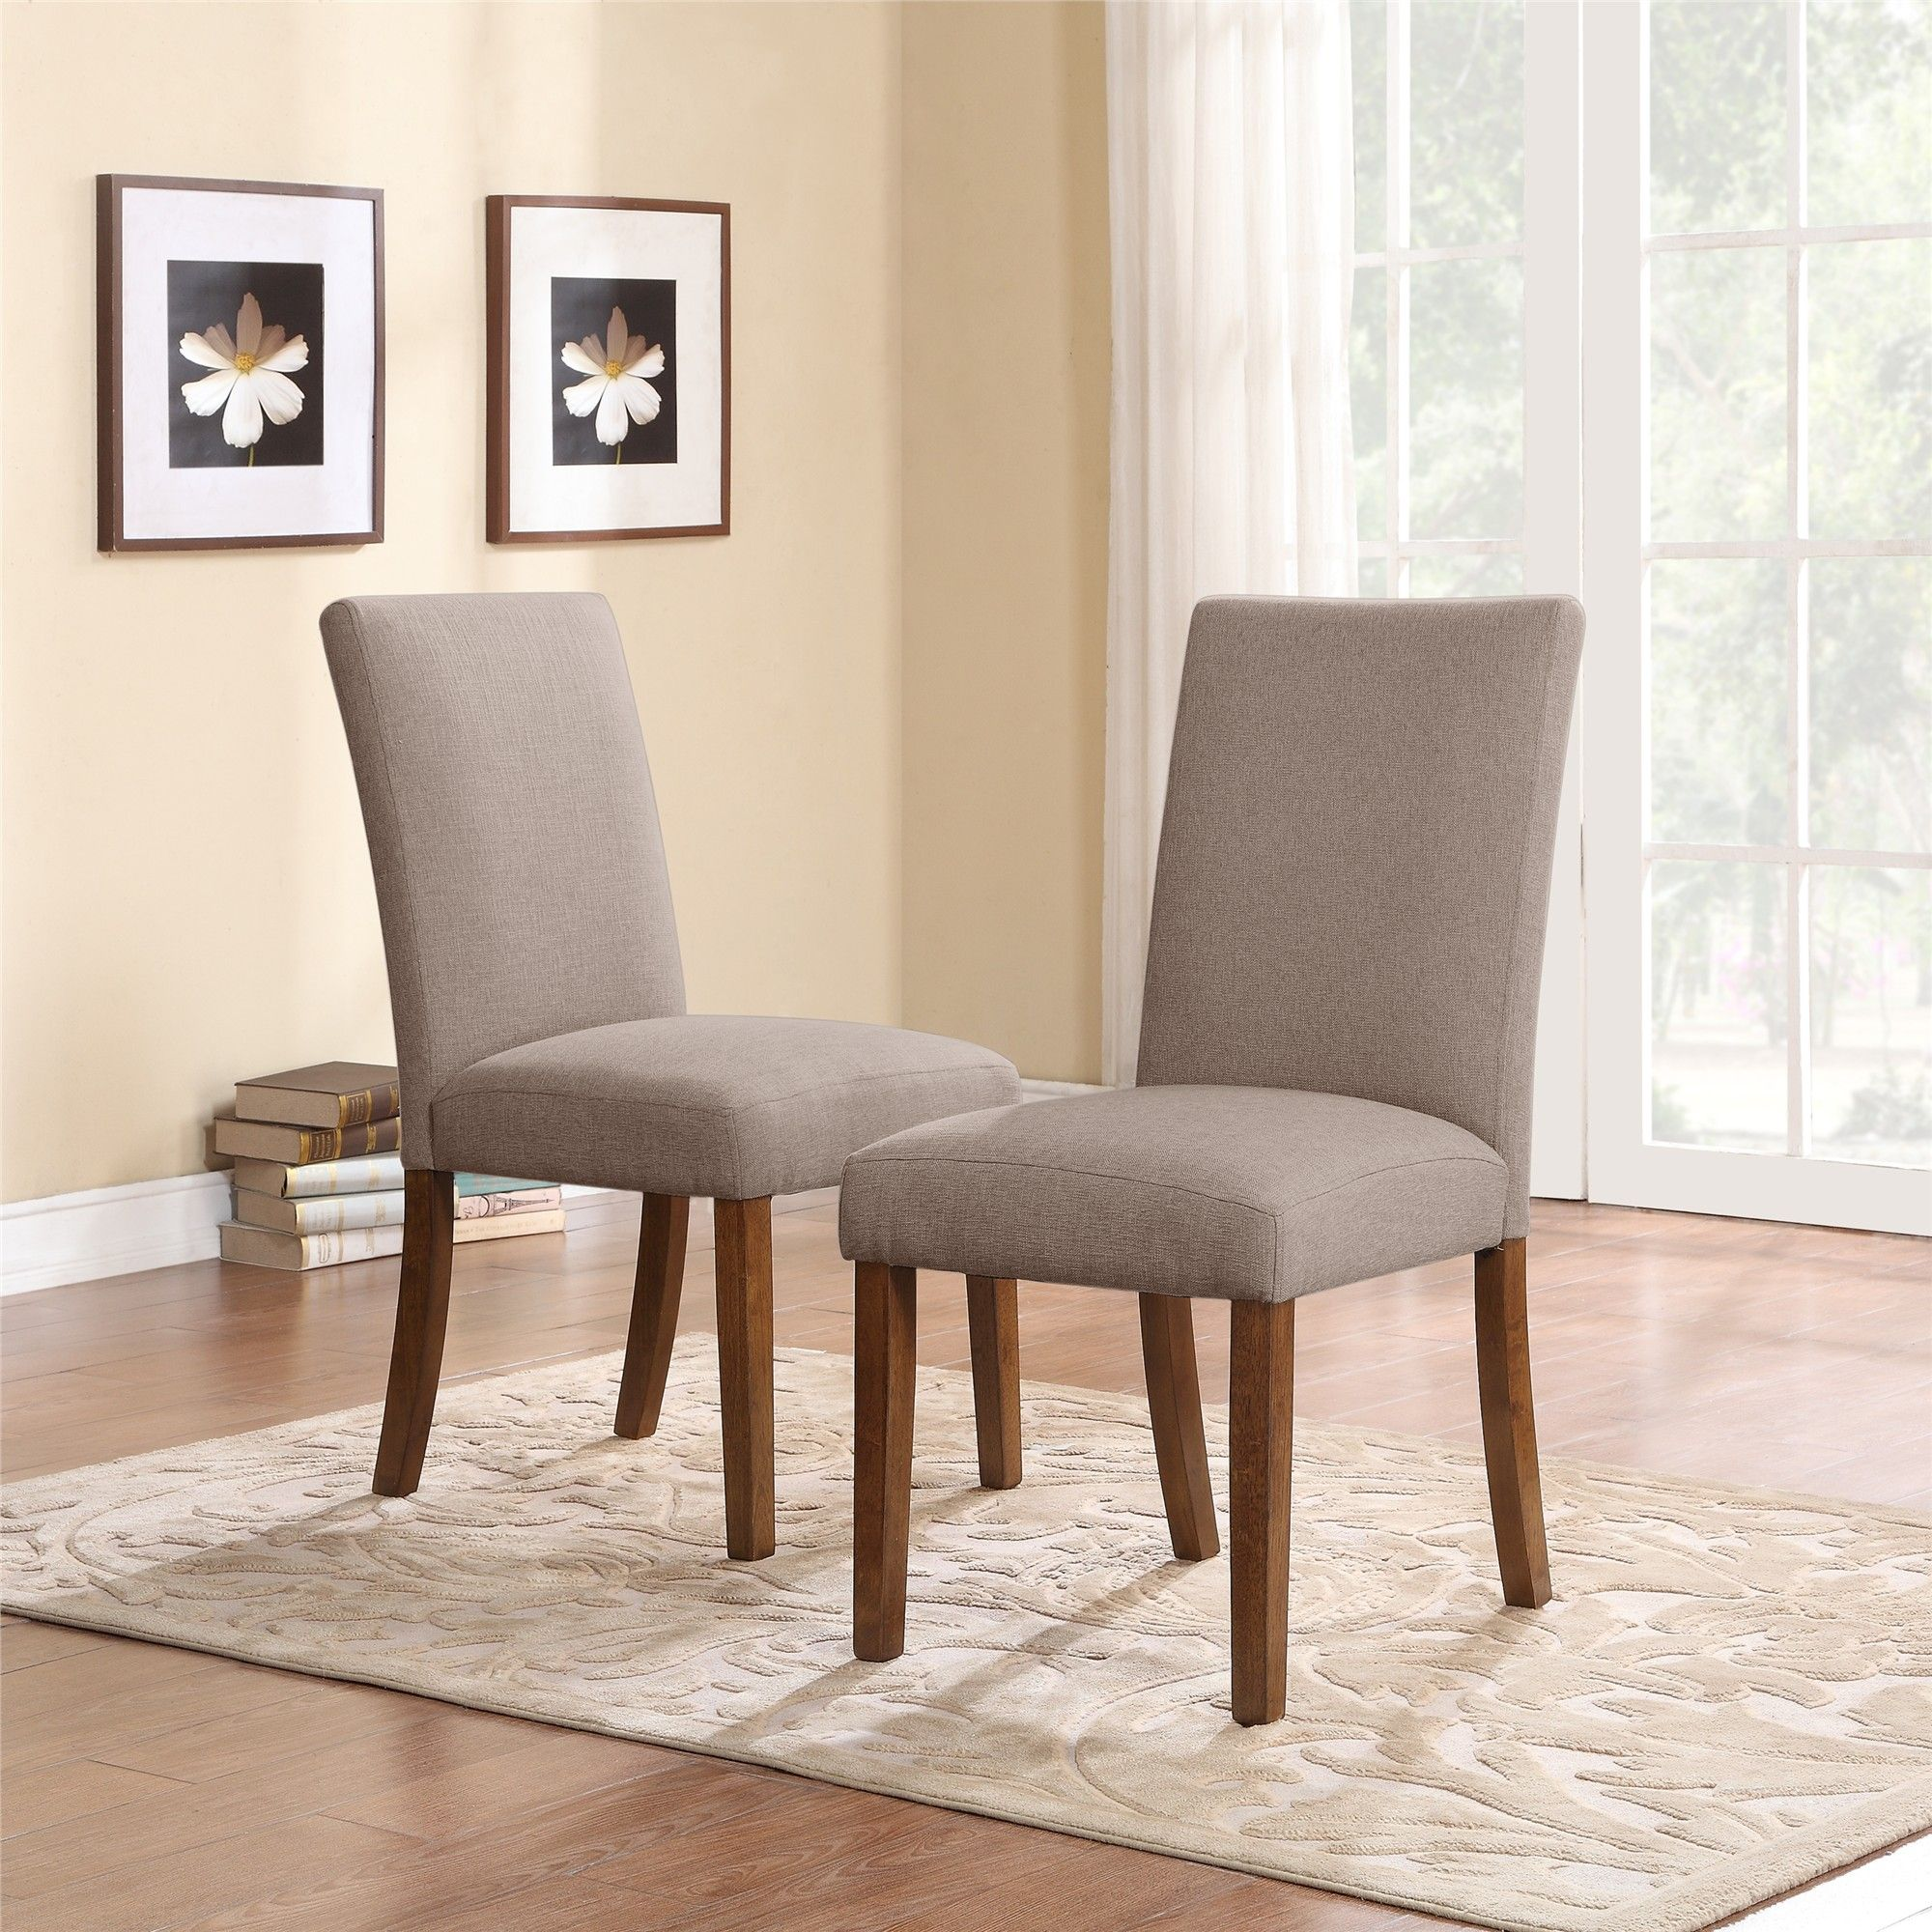 Parson Dining Room Chairs | Chairs | Upholstered dining ...